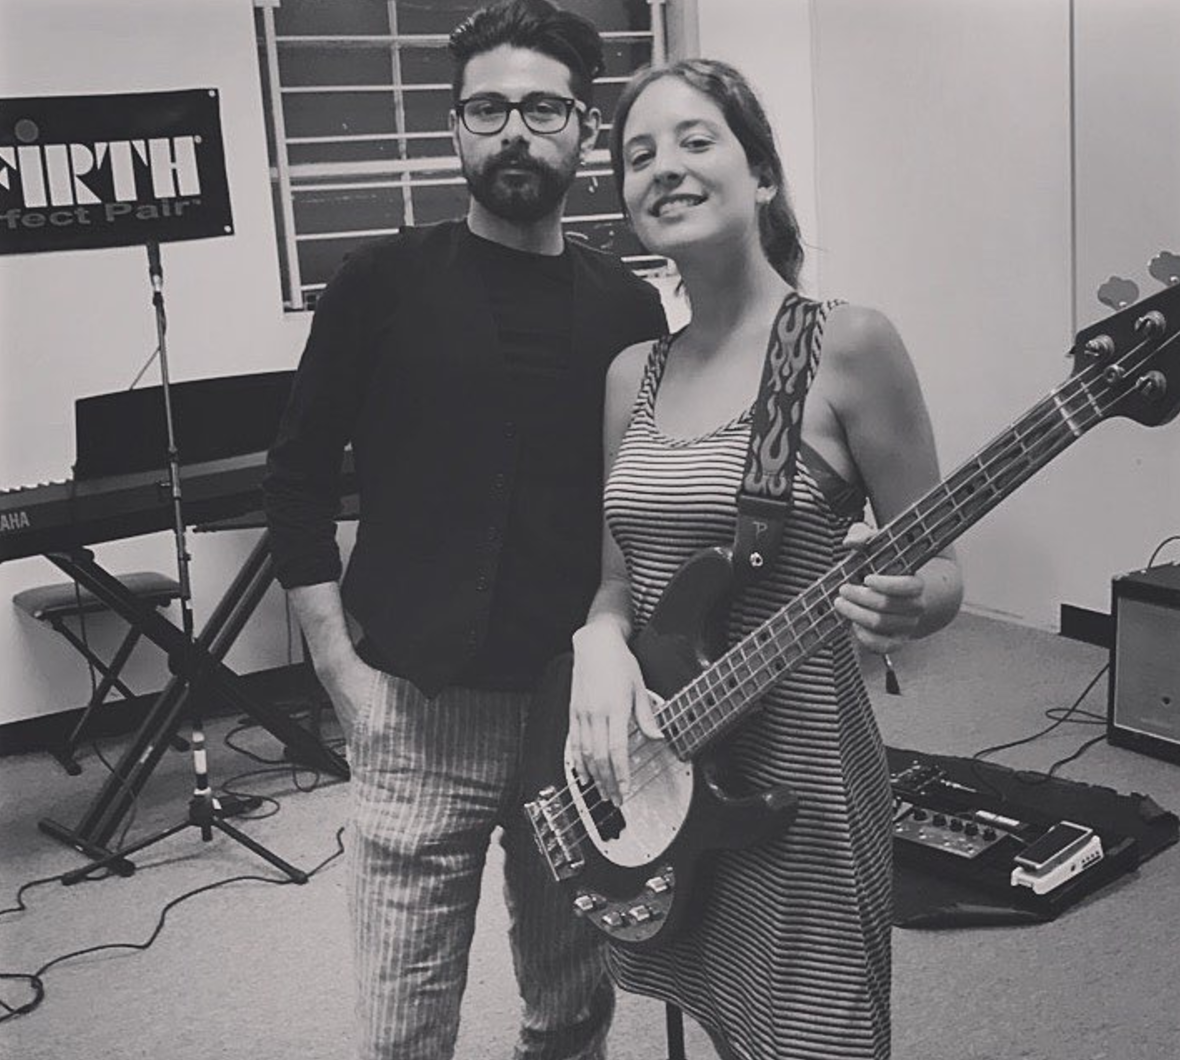 Benjamin Jay (left), Michelle Leclerq (right) at rehearsals in Pasadena California, 2017.